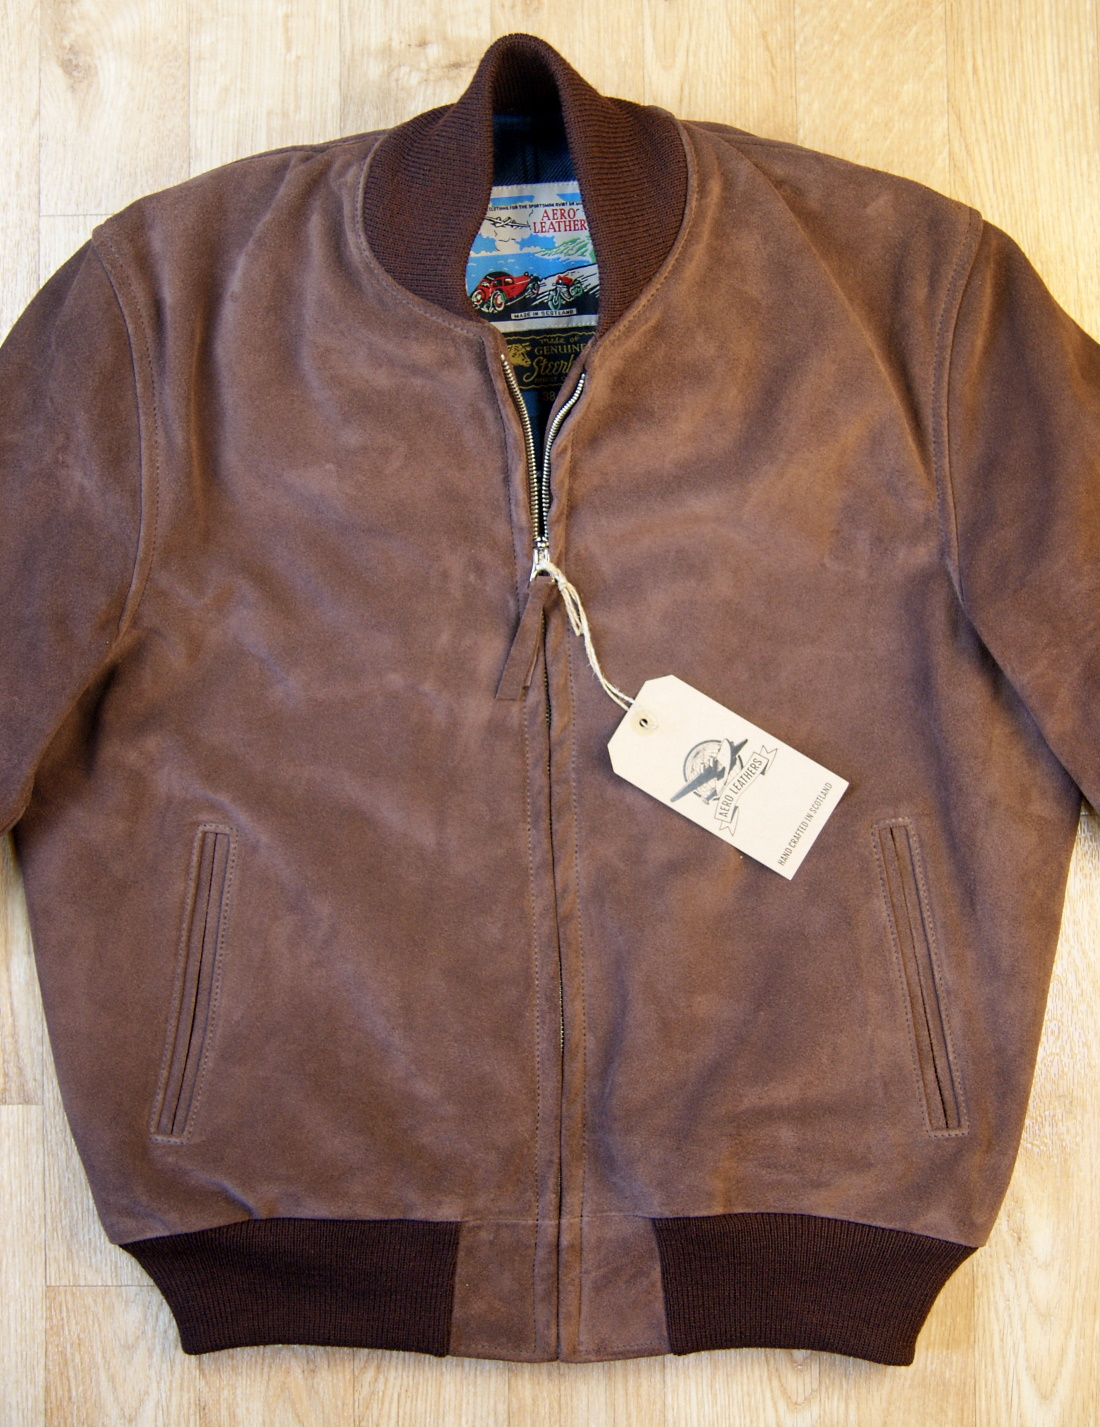 Aero College Jacket Chocolate Suede front 2.jpg